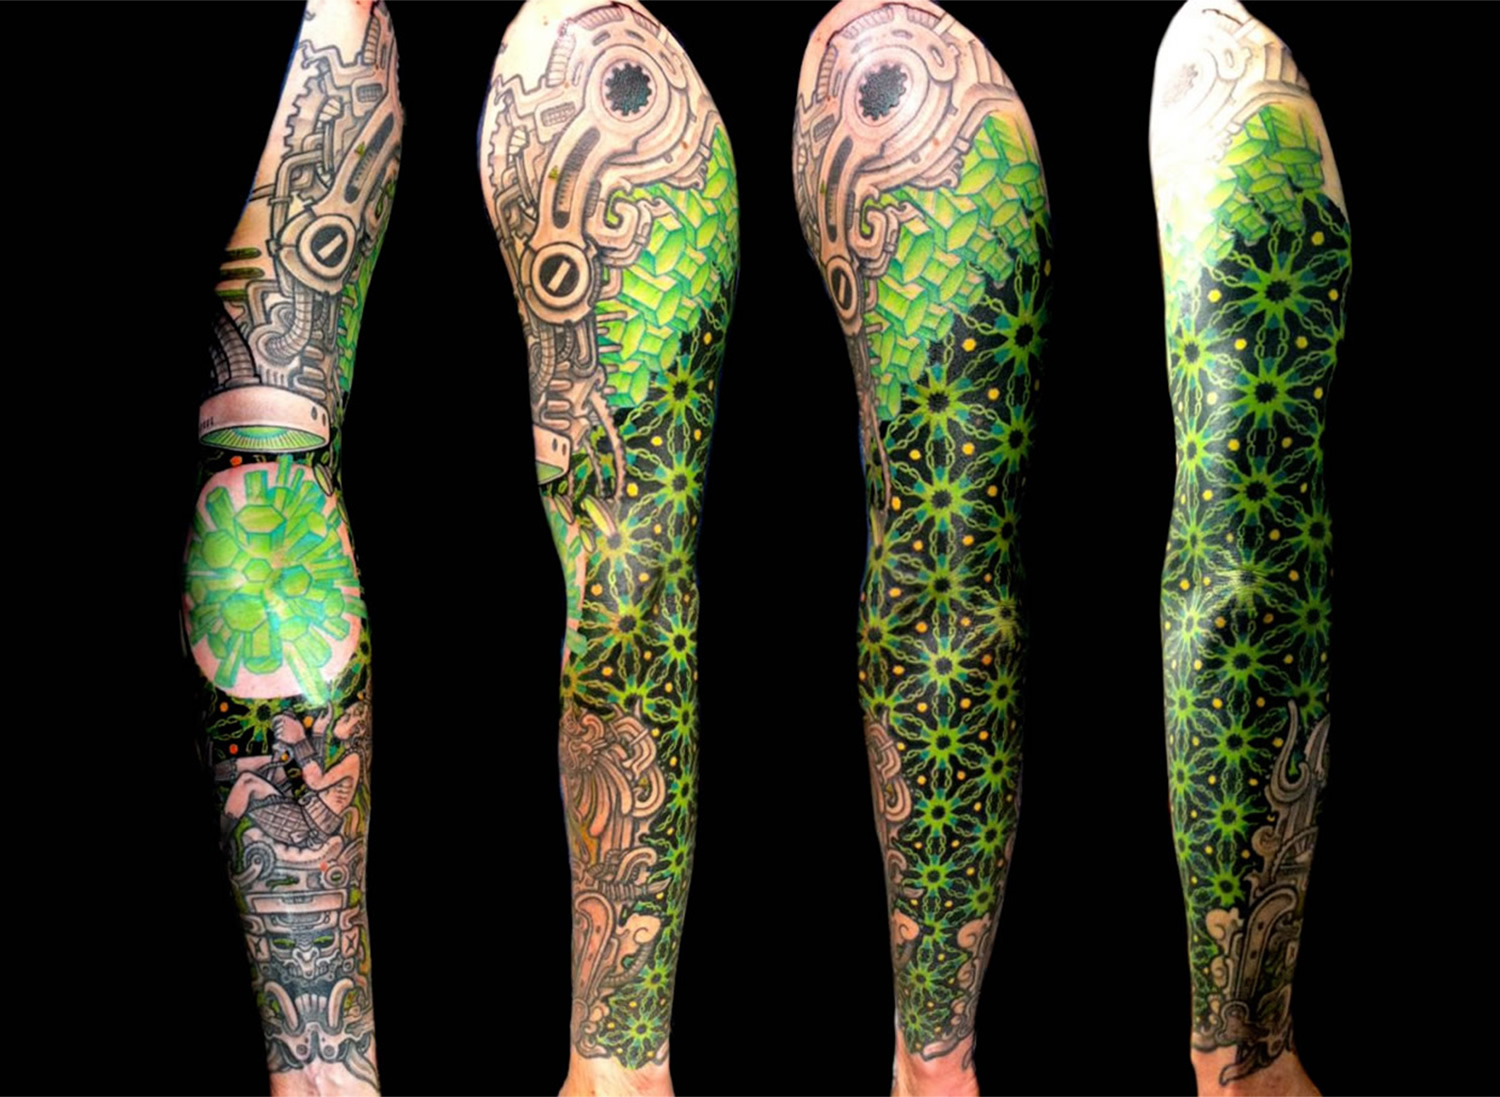 biomechanical tattoos, neon green sleeve, by DELAINE 'NEO' GILMA